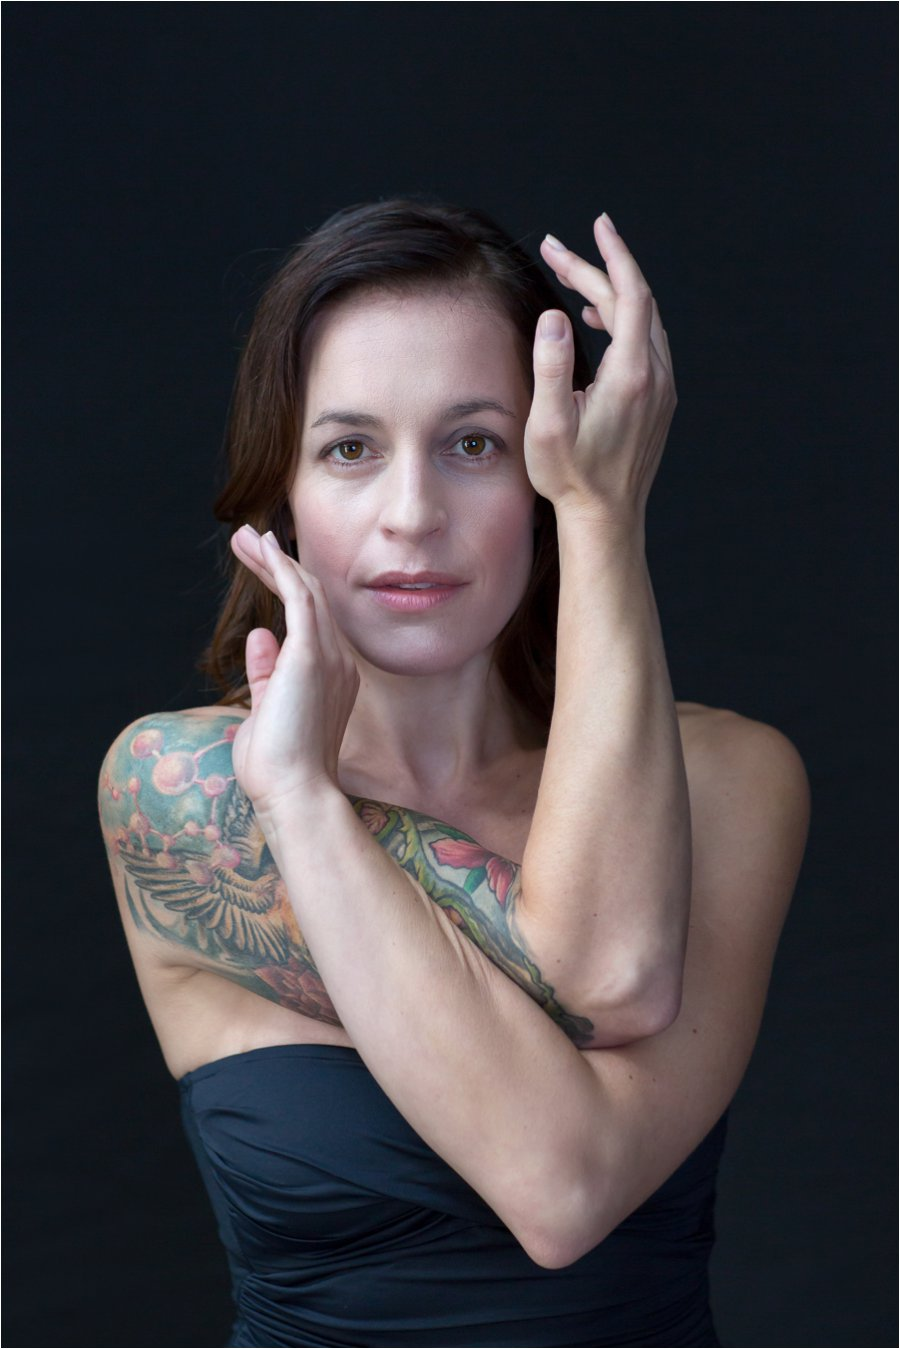 Portrait of a Dancer with Tattoos © 2015 Maundy Mitchell_0003.jpg